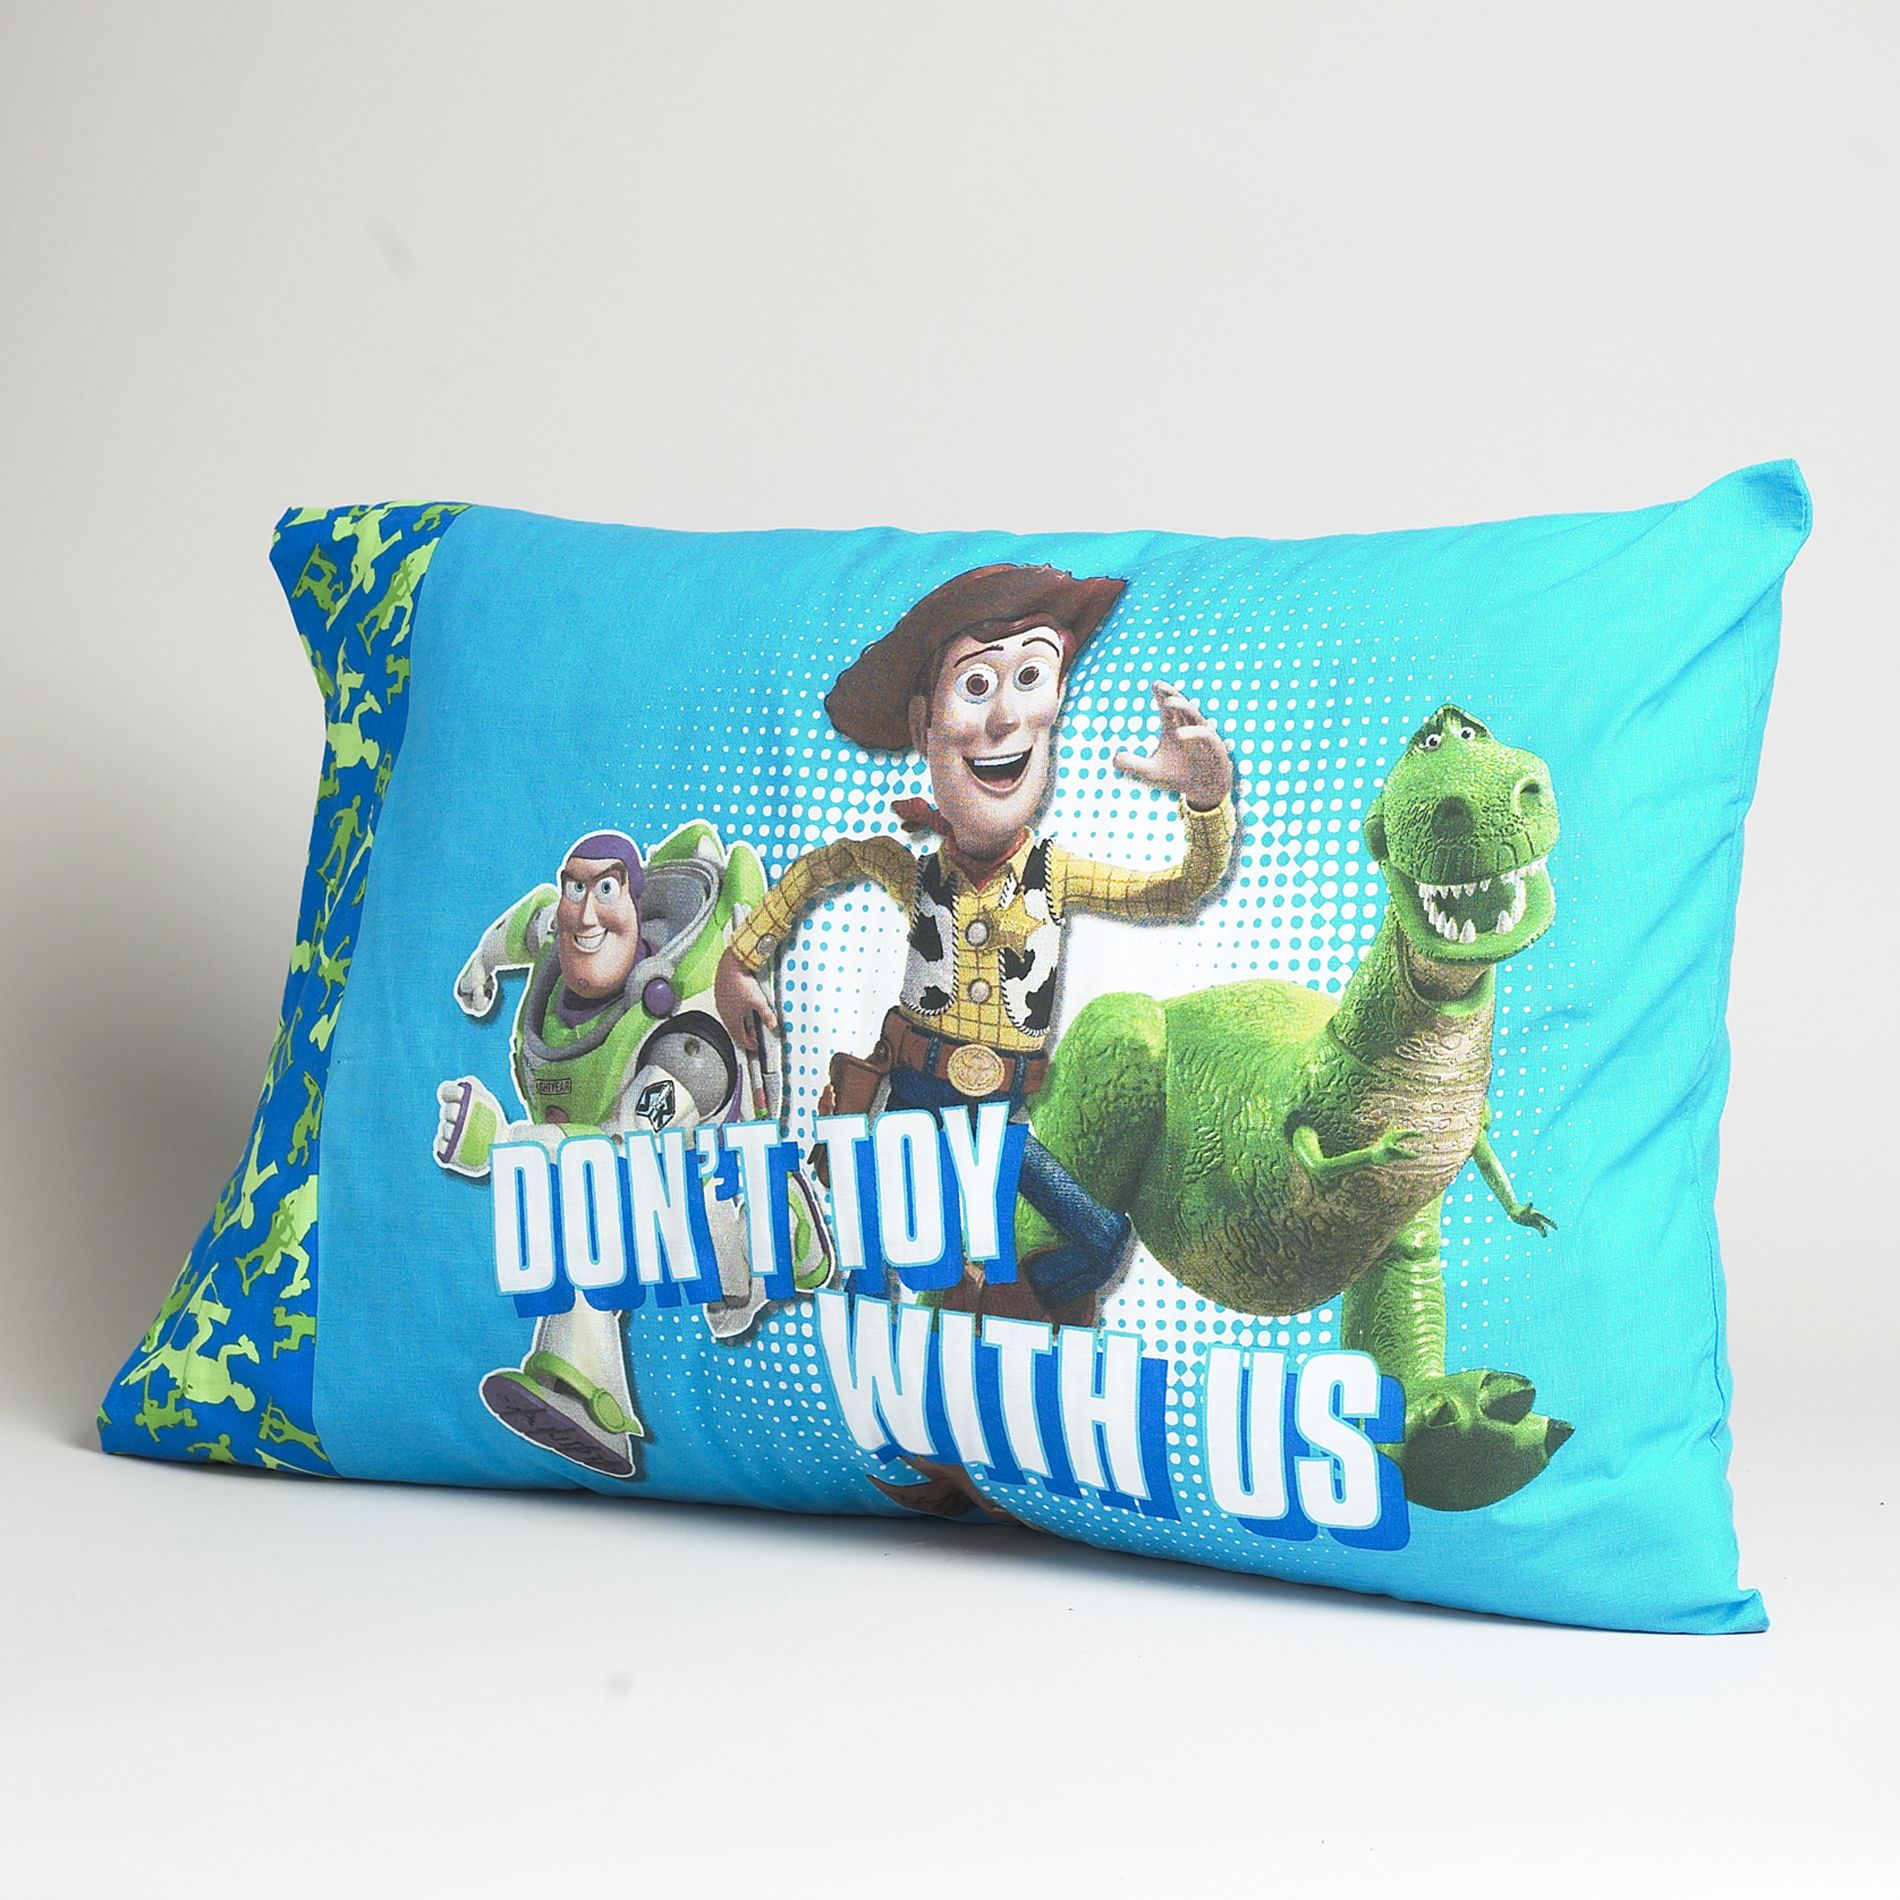 Disney Toy Story 3 Pillowcase